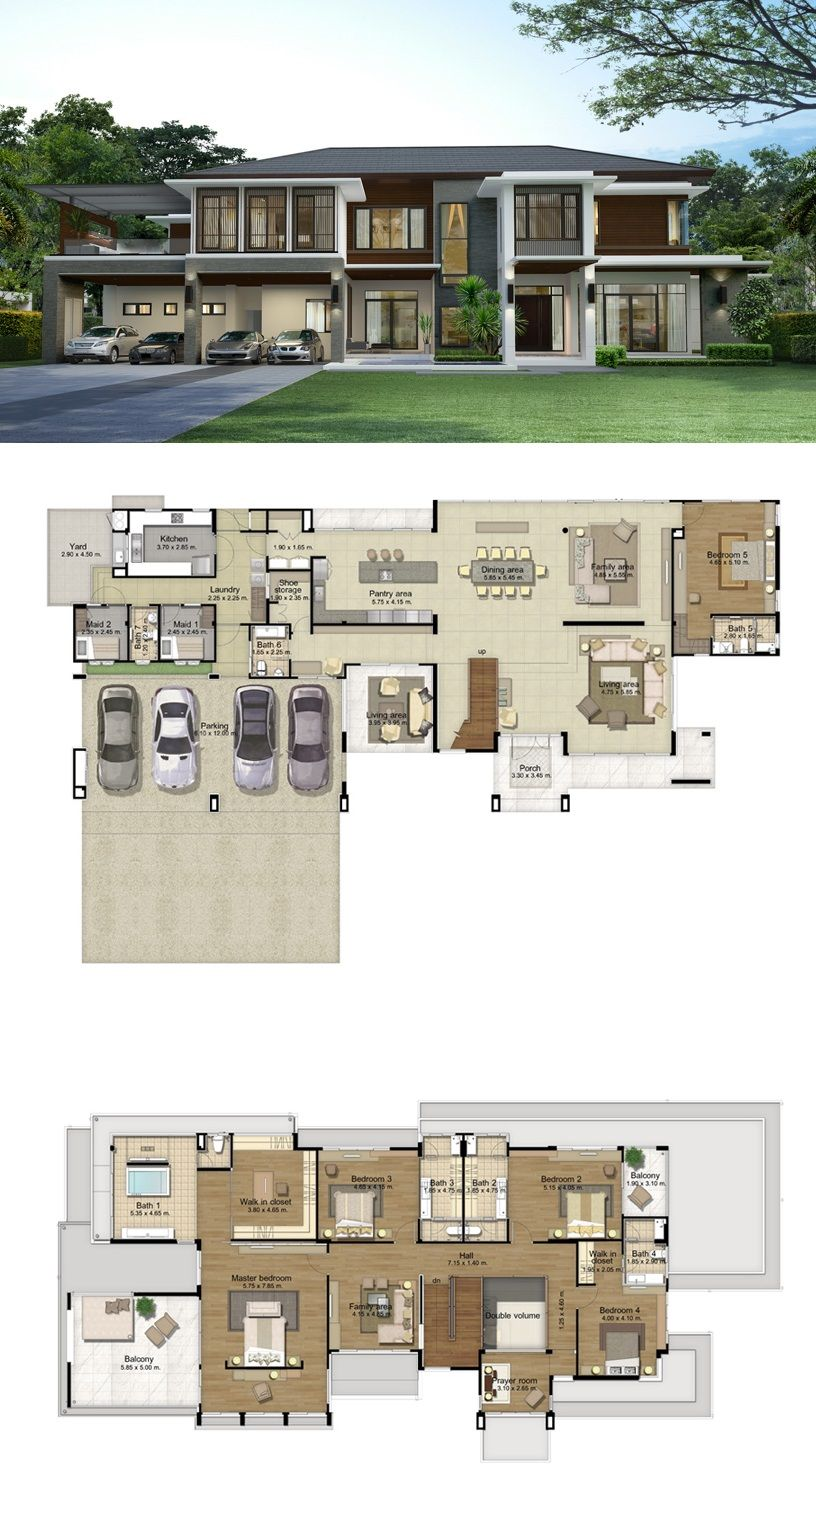 Land And Houses Modern House Plans House Plans House Layouts